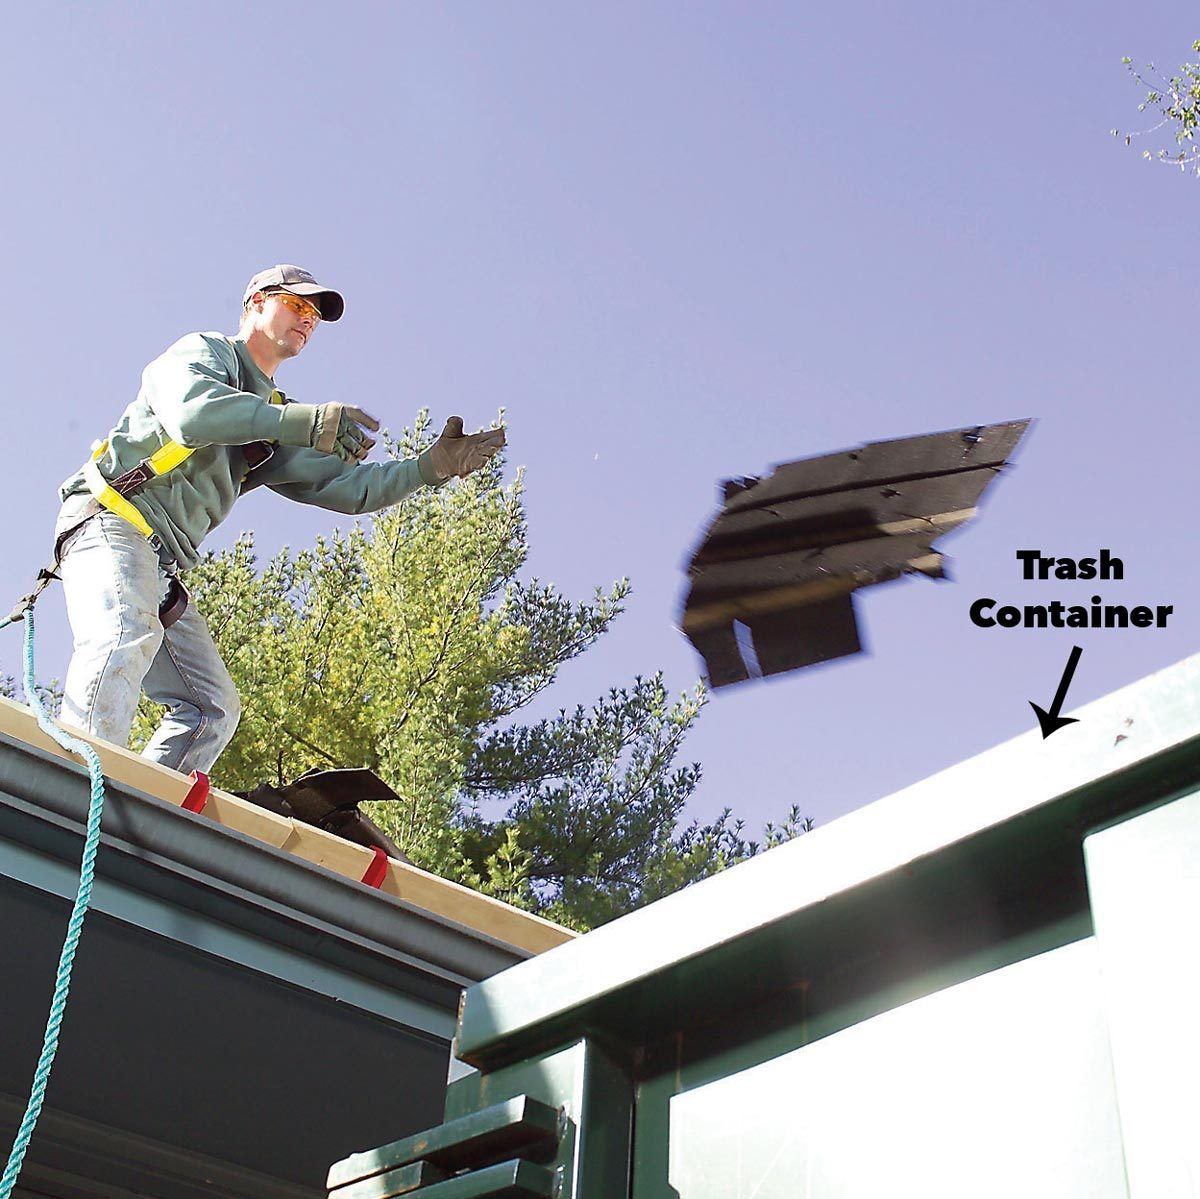 toss roof singles directly into trash